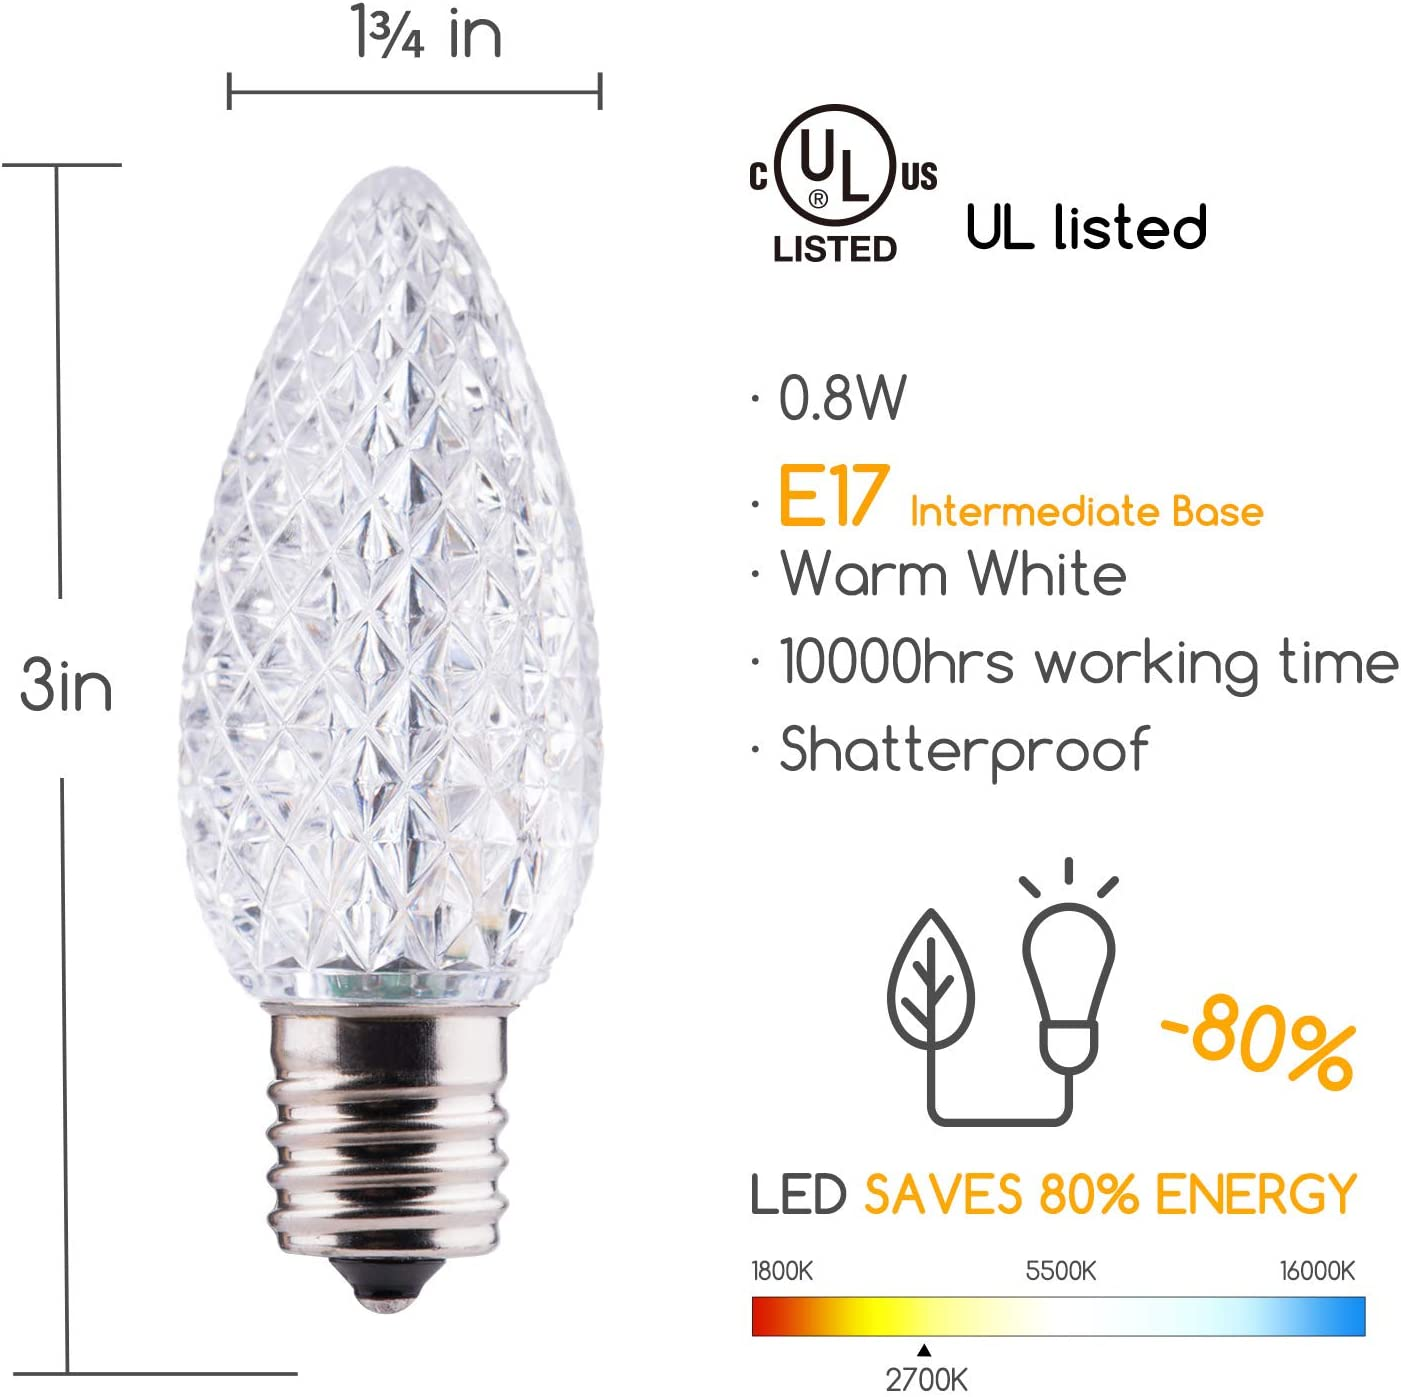 LEDs Commercial Grade Dimmable Bulbs C9 Shatterproof LED Bulb for Christmas String Light Brightown 50 Pack C9 LED Replacement Christmas Light Bulb E17 Intermediate Base 2 Diode Cool White